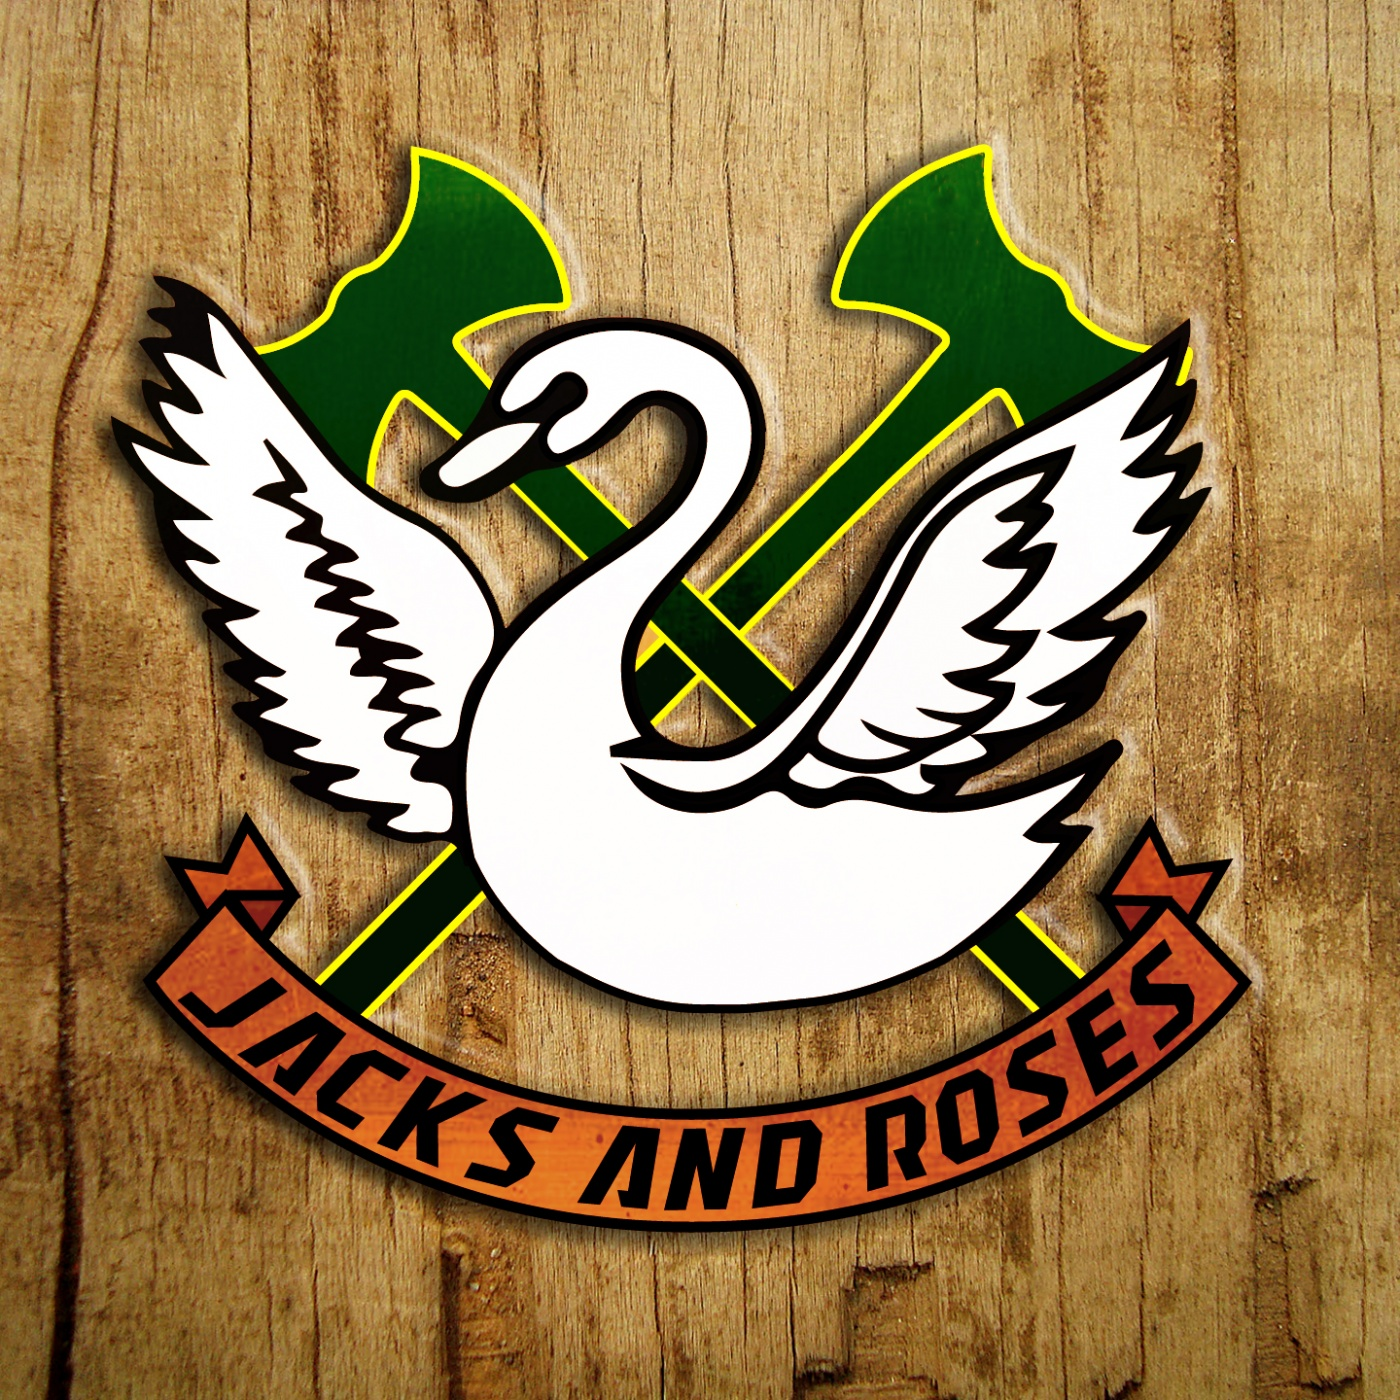 Jacks and Roses